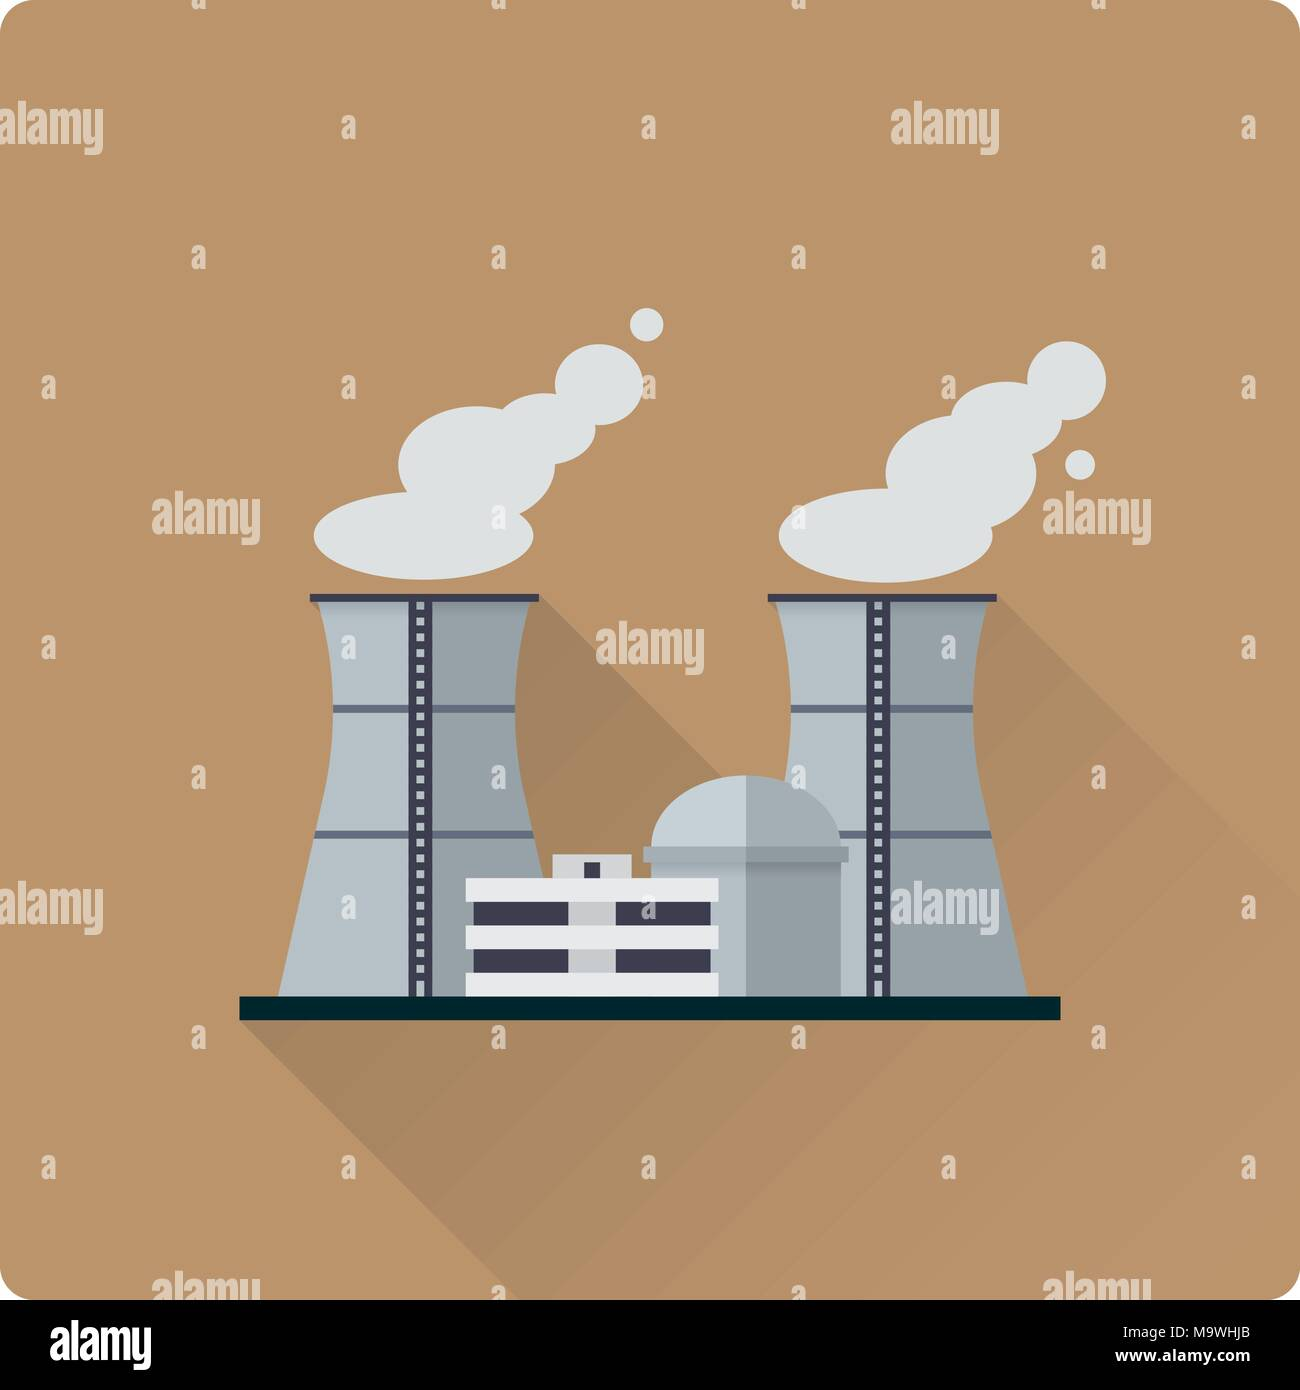 flat design long shadow nuclear power plant buildings vector illustration - Stock Image